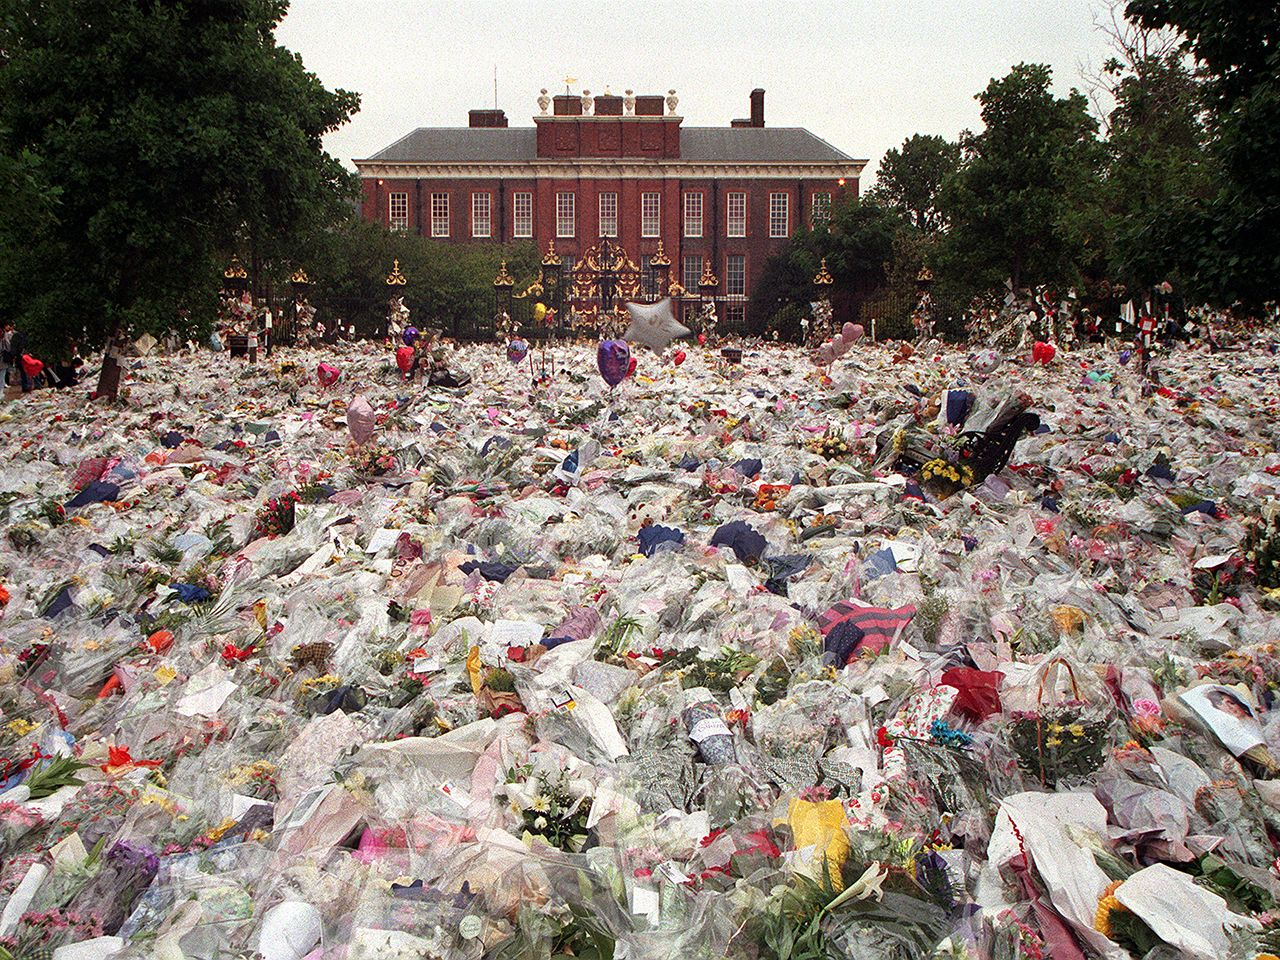 Princess Diana Flowers And Tributes Lrft At Her Home After Her